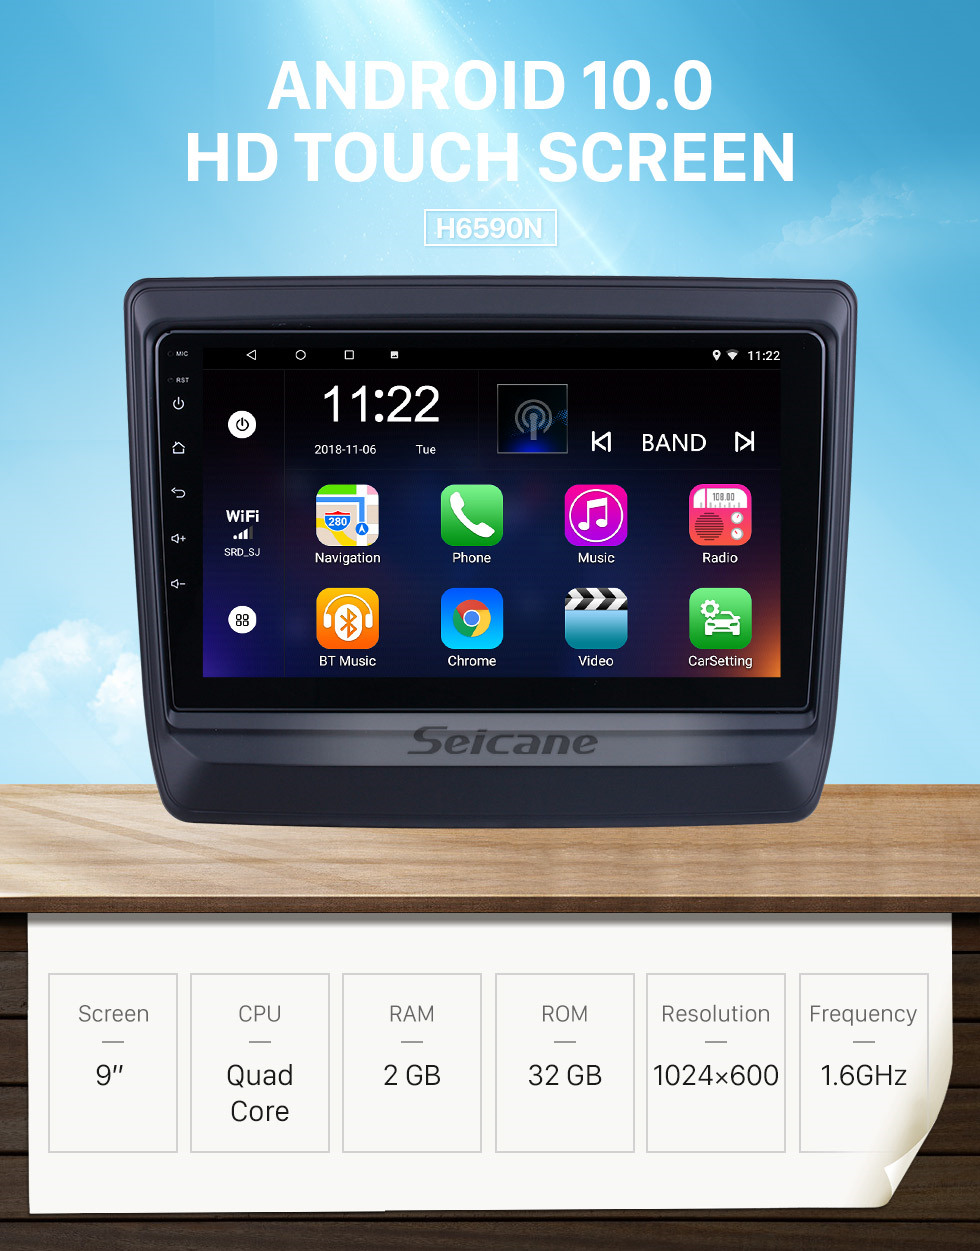 Seicane Android 10.0 HD Touchscreen 9 inch for 2020 Isuzu D-Max Radio GPS Navigation System with USB Bluetooth support Carplay DVR OBD2